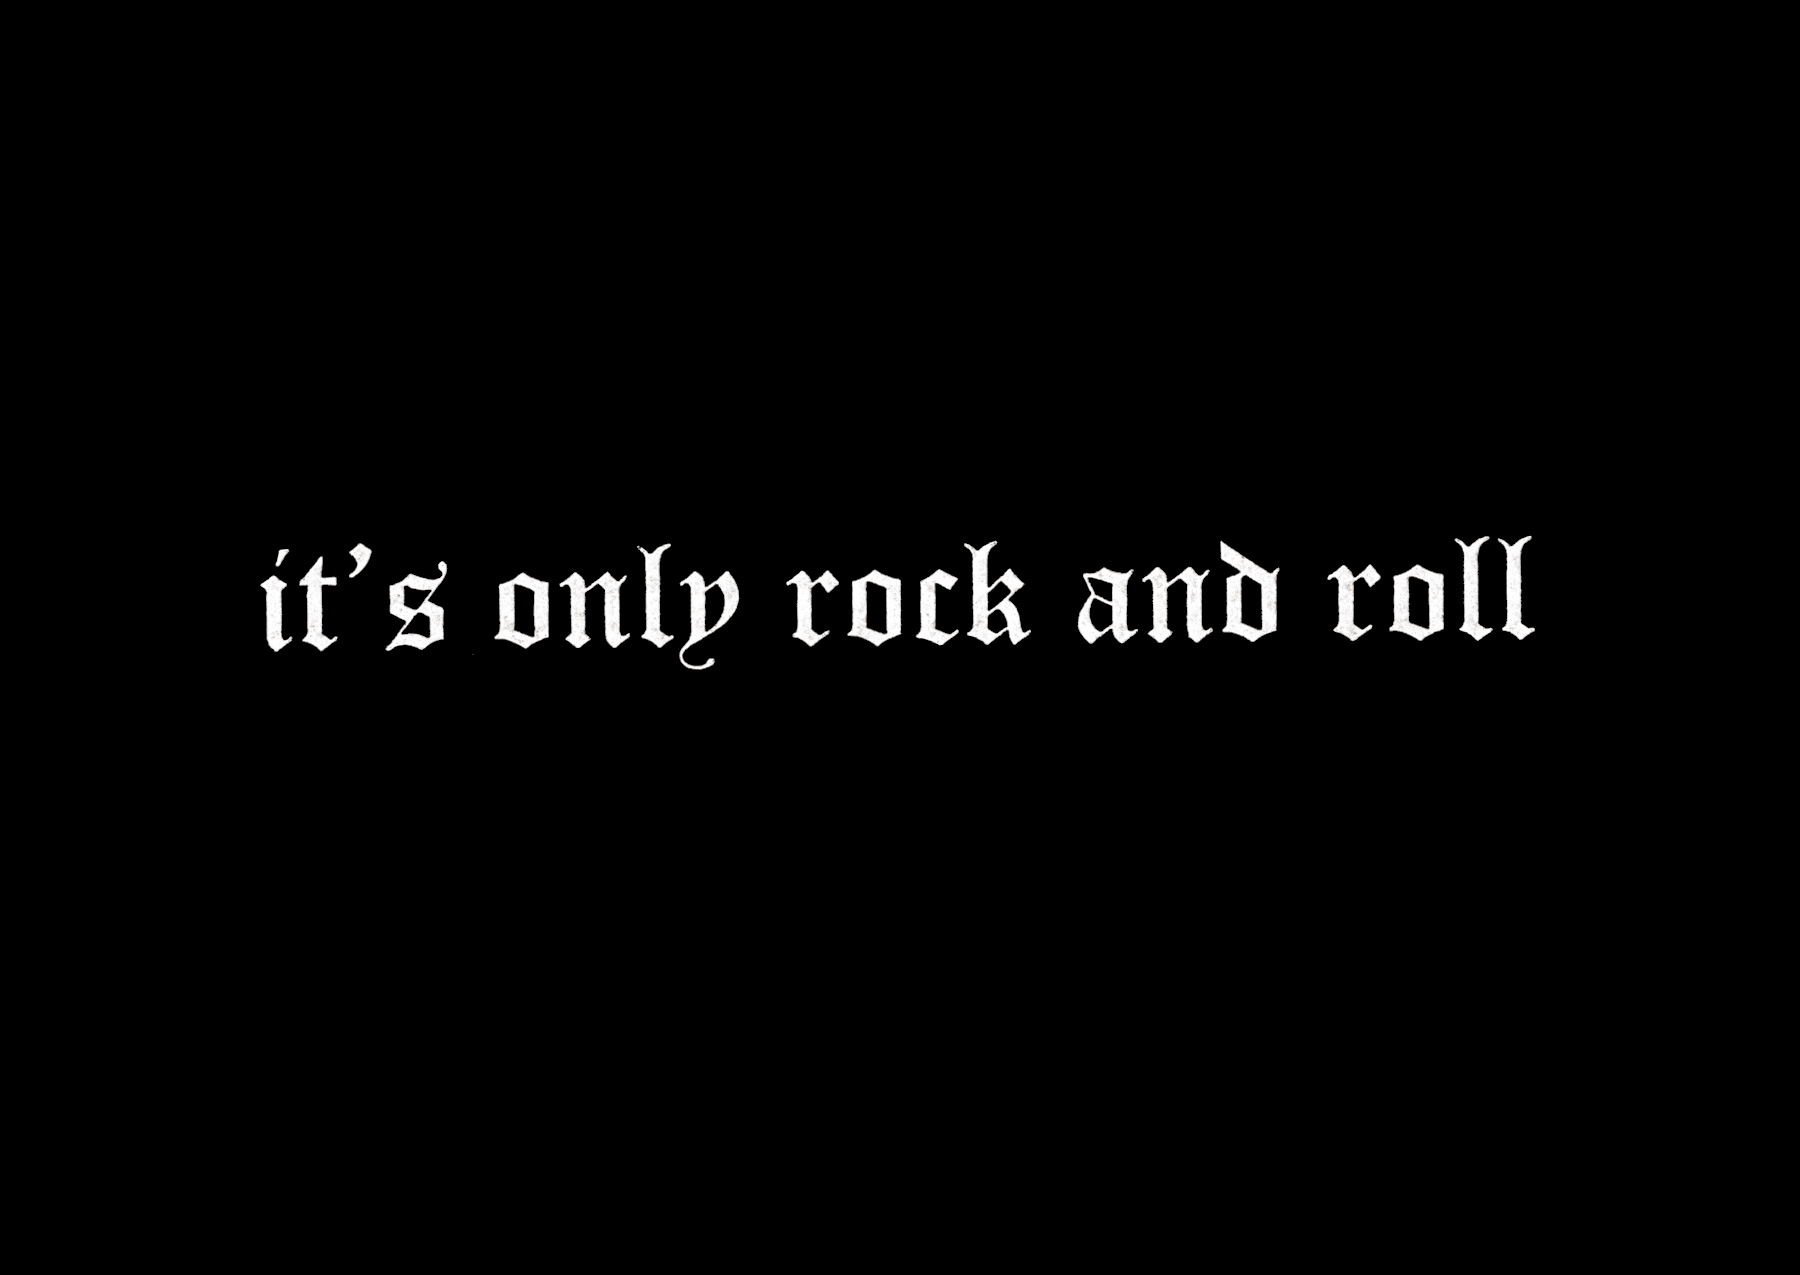 its only rock and roll goodnight projects